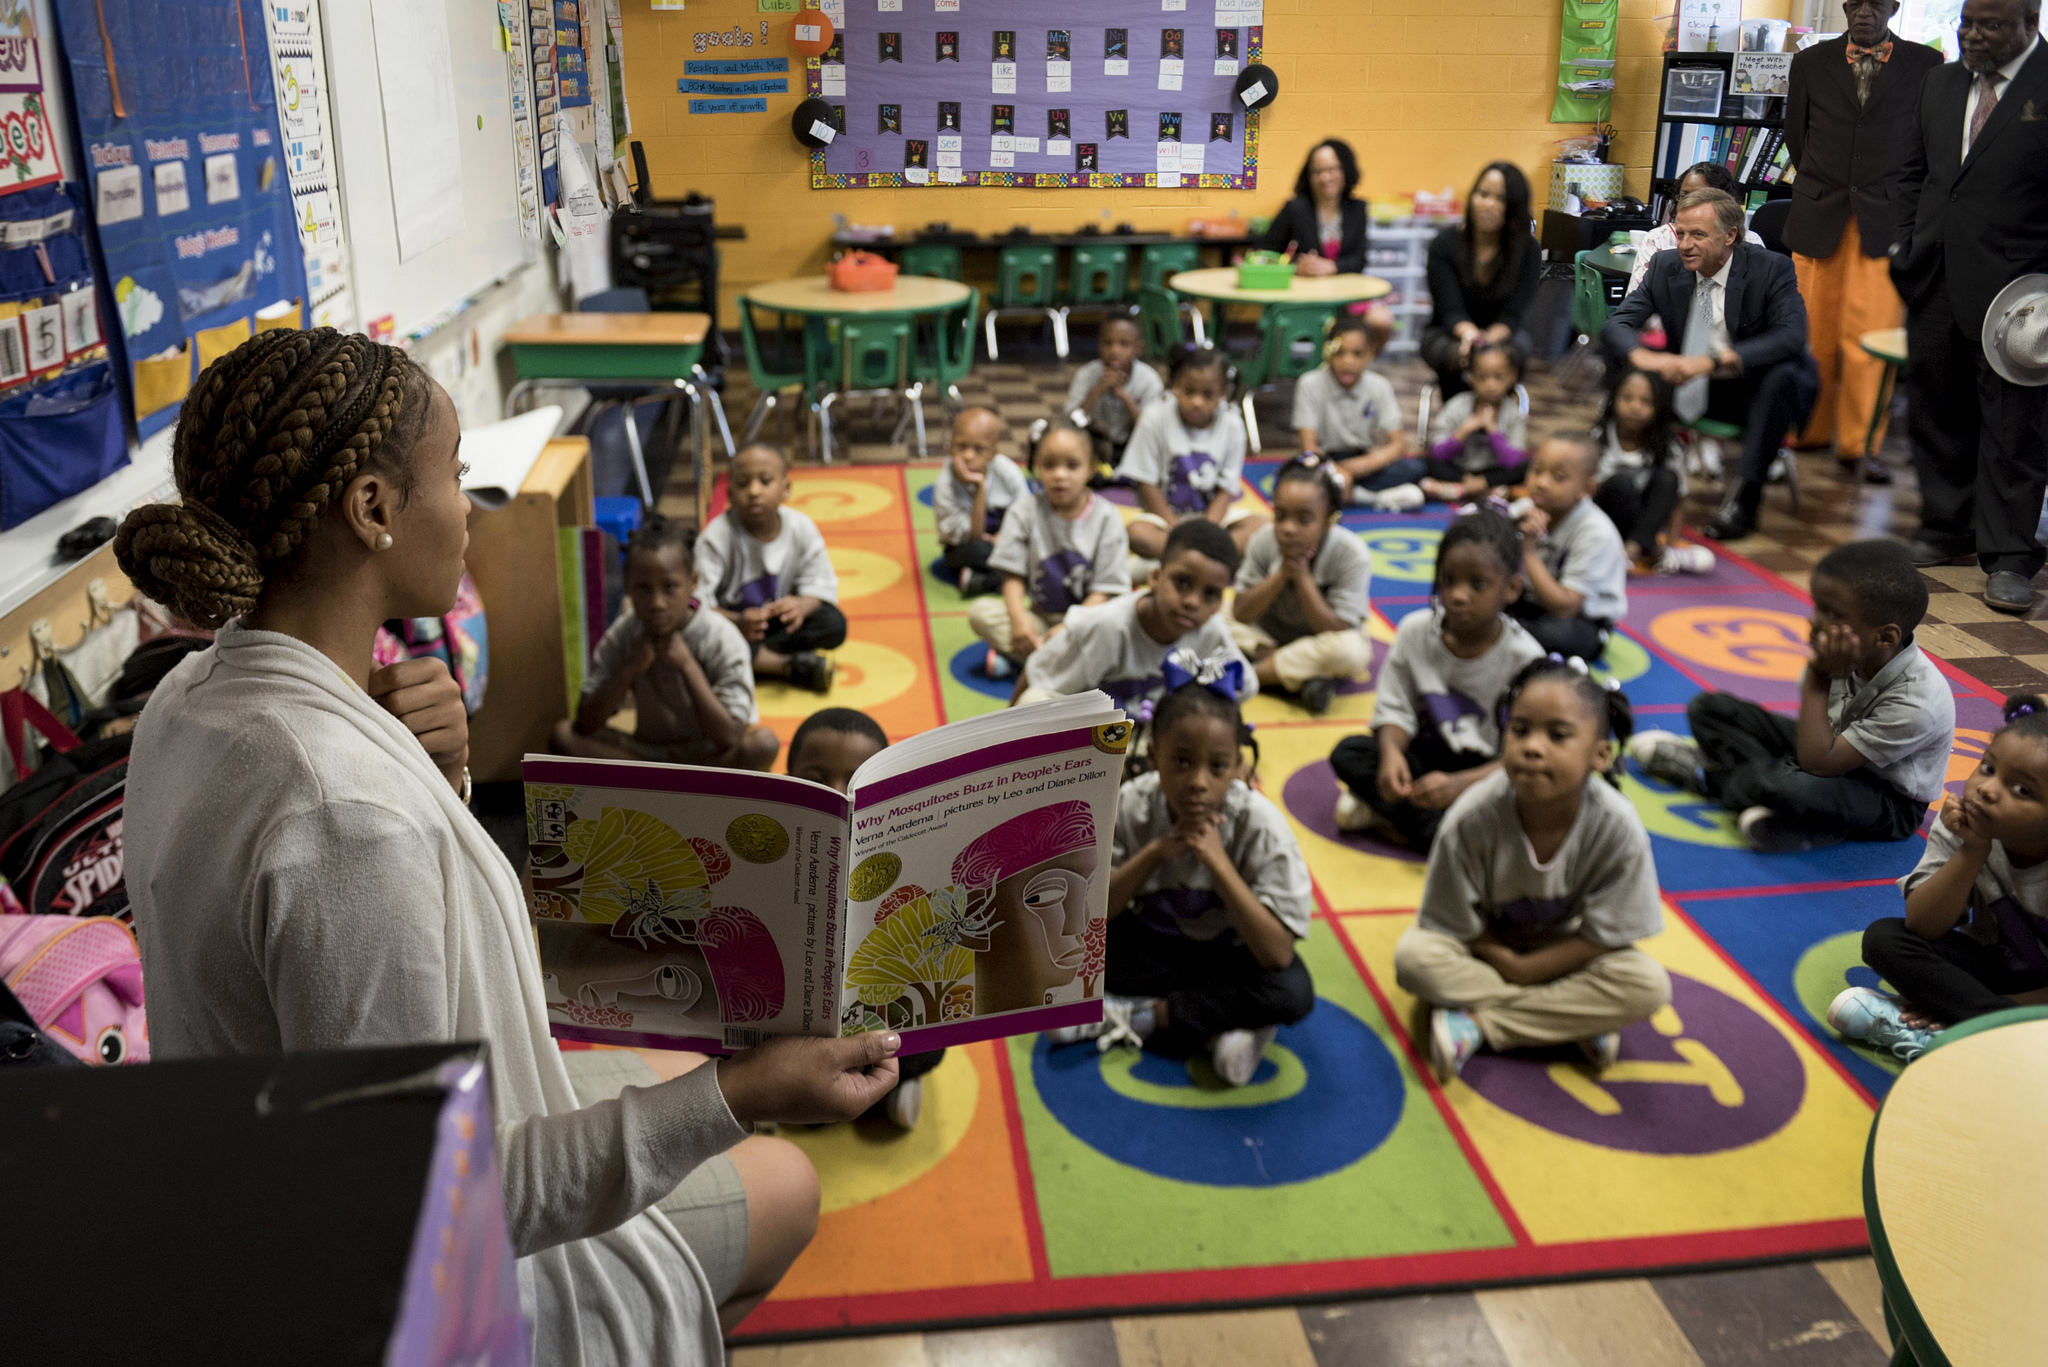 A teacher instructs students at Aspire Coleman Elementary School on May 12 as Gov. Bill Haslam and other officials visit the Memphis charter school operated under Tennessee's Achievement School District.